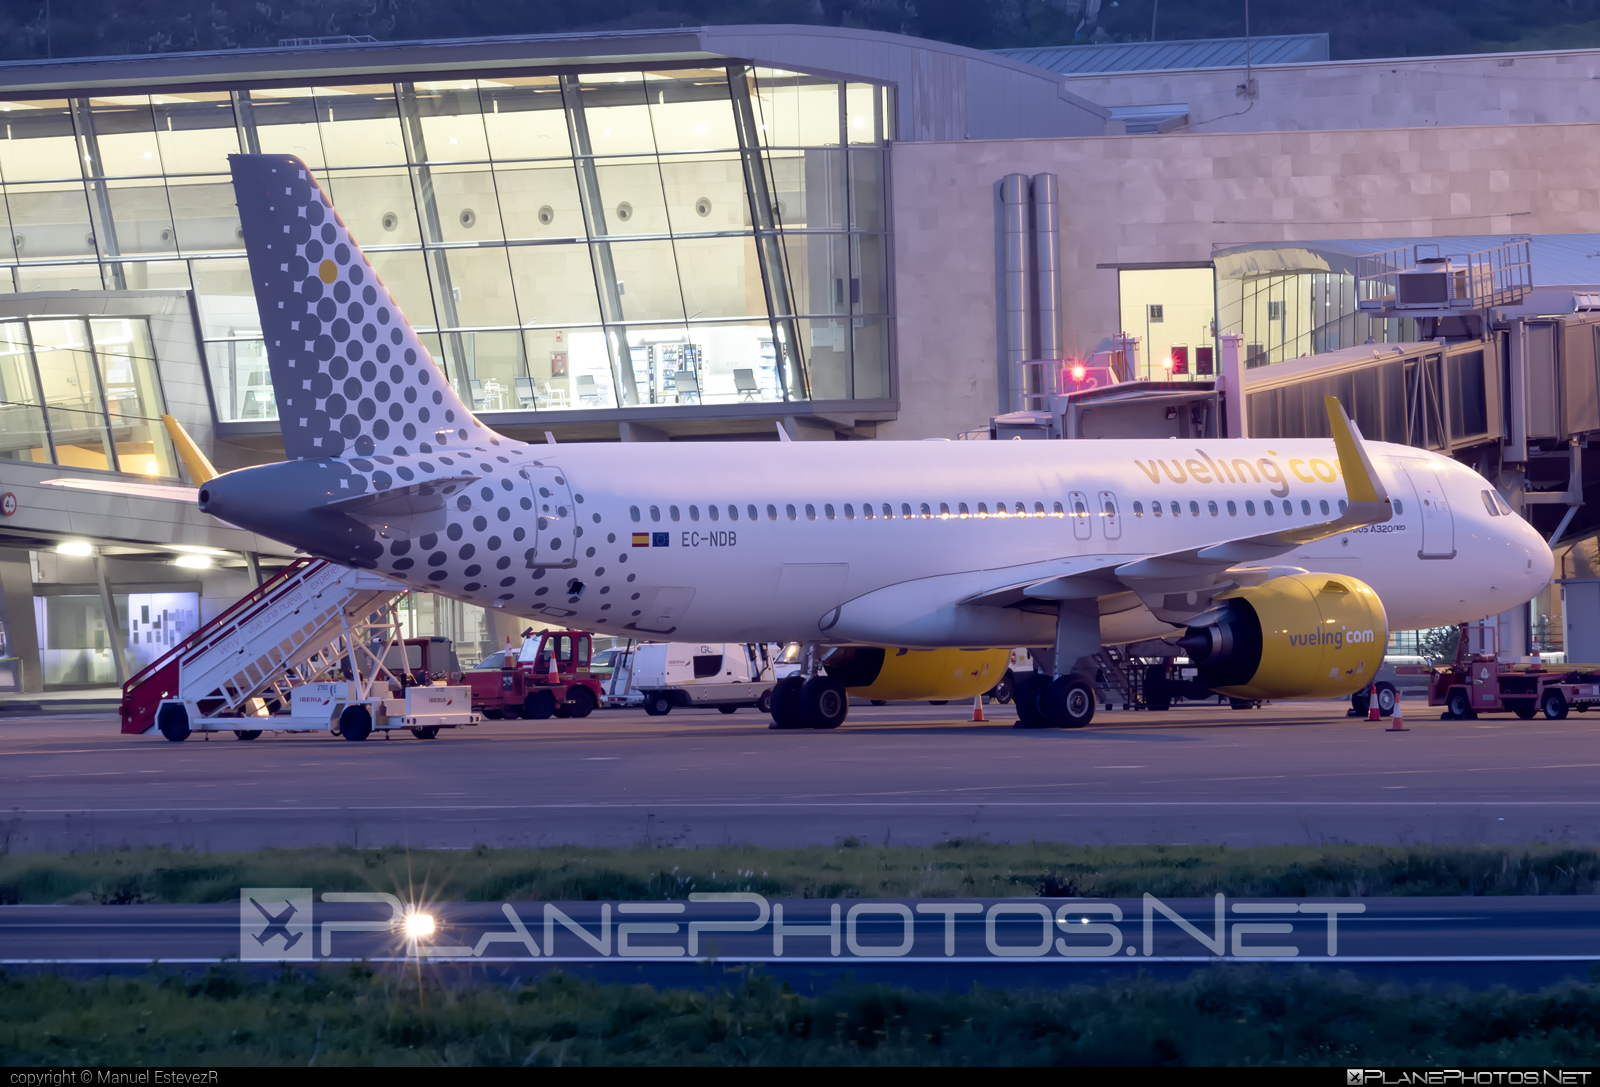 Airbus A320-271N - EC-NDB operated by Vueling Airlines #a320 #a320family #a320neo #airbus #airbus320 #vueling #vuelingairlines